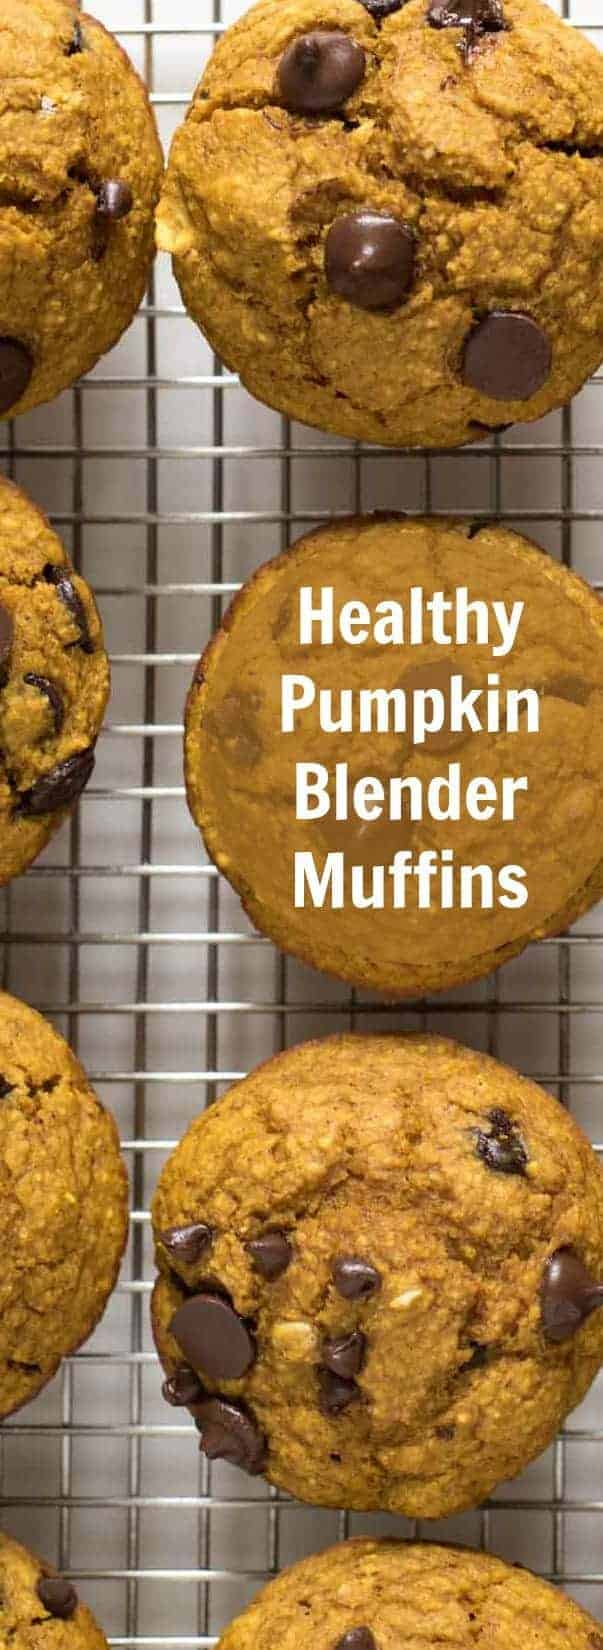 Healthy Pumpkin Blender Muffins are made by placing wholesome ingredients in a blender and processing until smooth. Simply blend, bake, and enjoy!